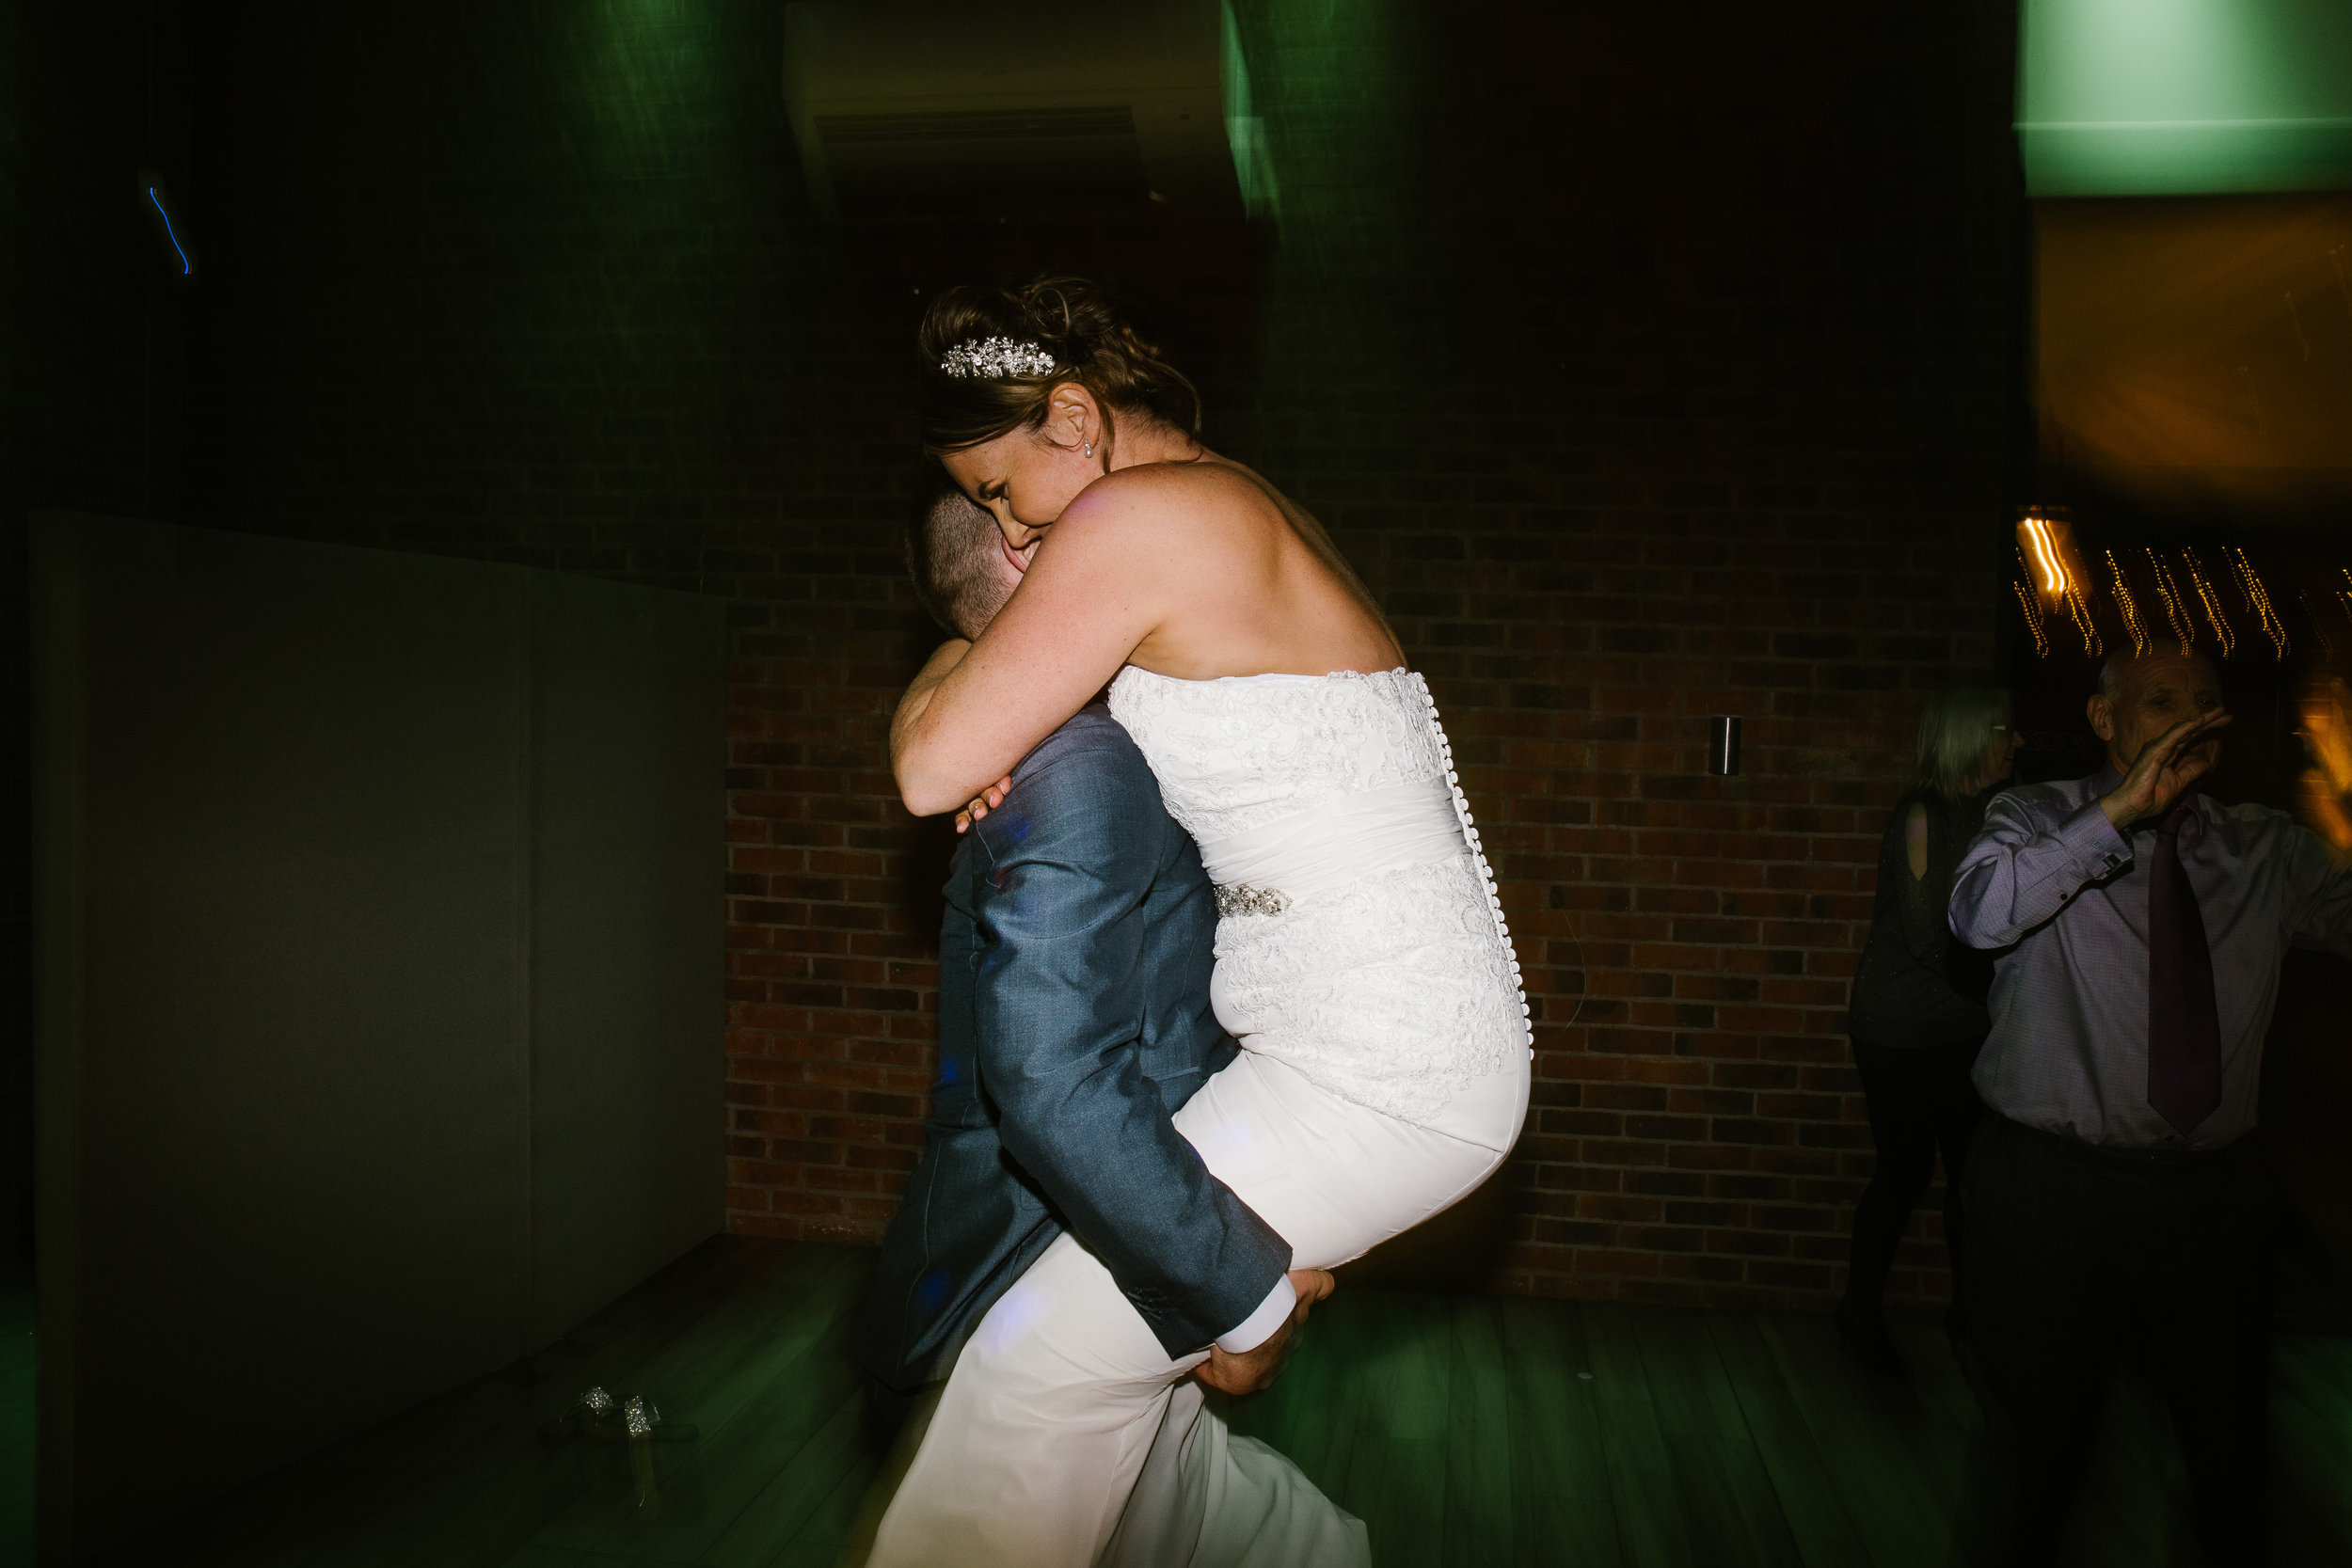 bride jumping up into husbands arms as they dance on the dance floor together